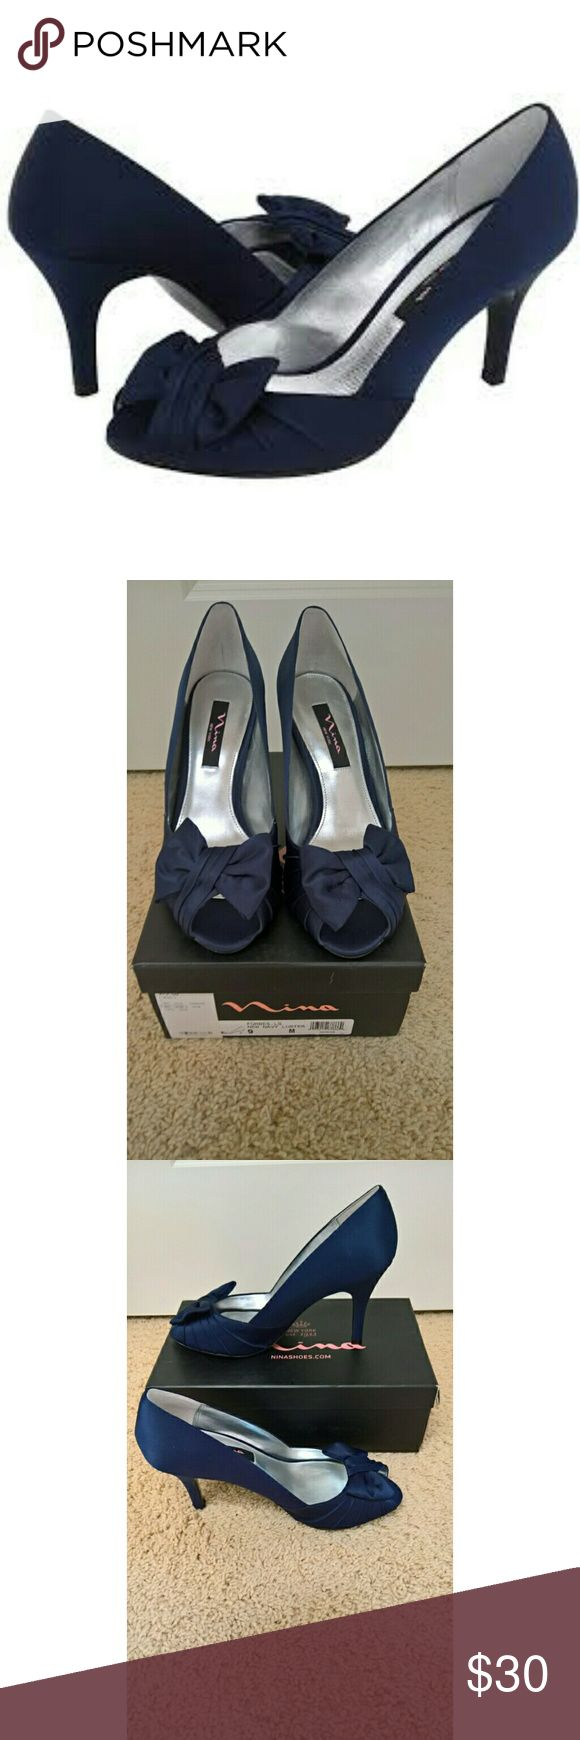 """NWT Nina Forbes Satin Pumps New with tags (never worn)! The Forbes Peep-Toe Pump in New Navy Luster gives femininity a new meaning. This is the perfect satin shoe for your next special occasion. Wear with an elegant wrap dress and your favorite necklace to make a statement of sheer elegance. Perfect For: Brides, Brides Maids, Guests, Formals & Proms. Features 3"""" heel, satin bow, pleated vamp, satin upper and leather sole.Comes from a smoke-free and pet-free home. Nina Shoes Heels"""